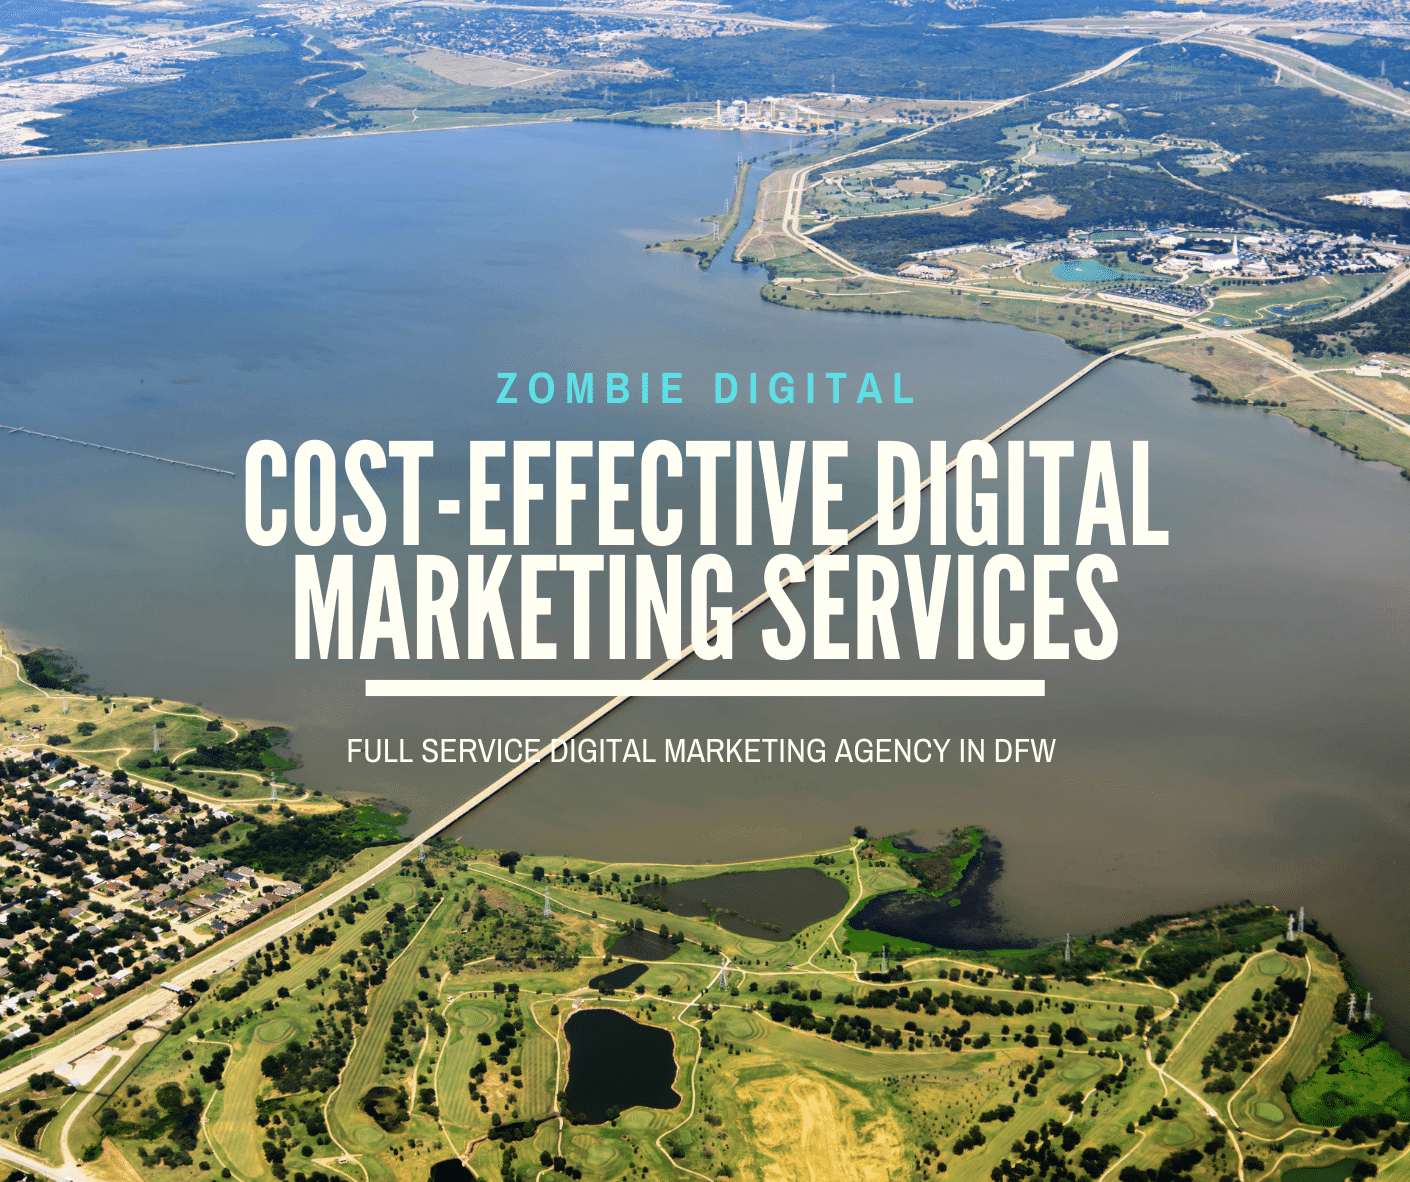 DFW DIGITAL MARKETING AGENCY